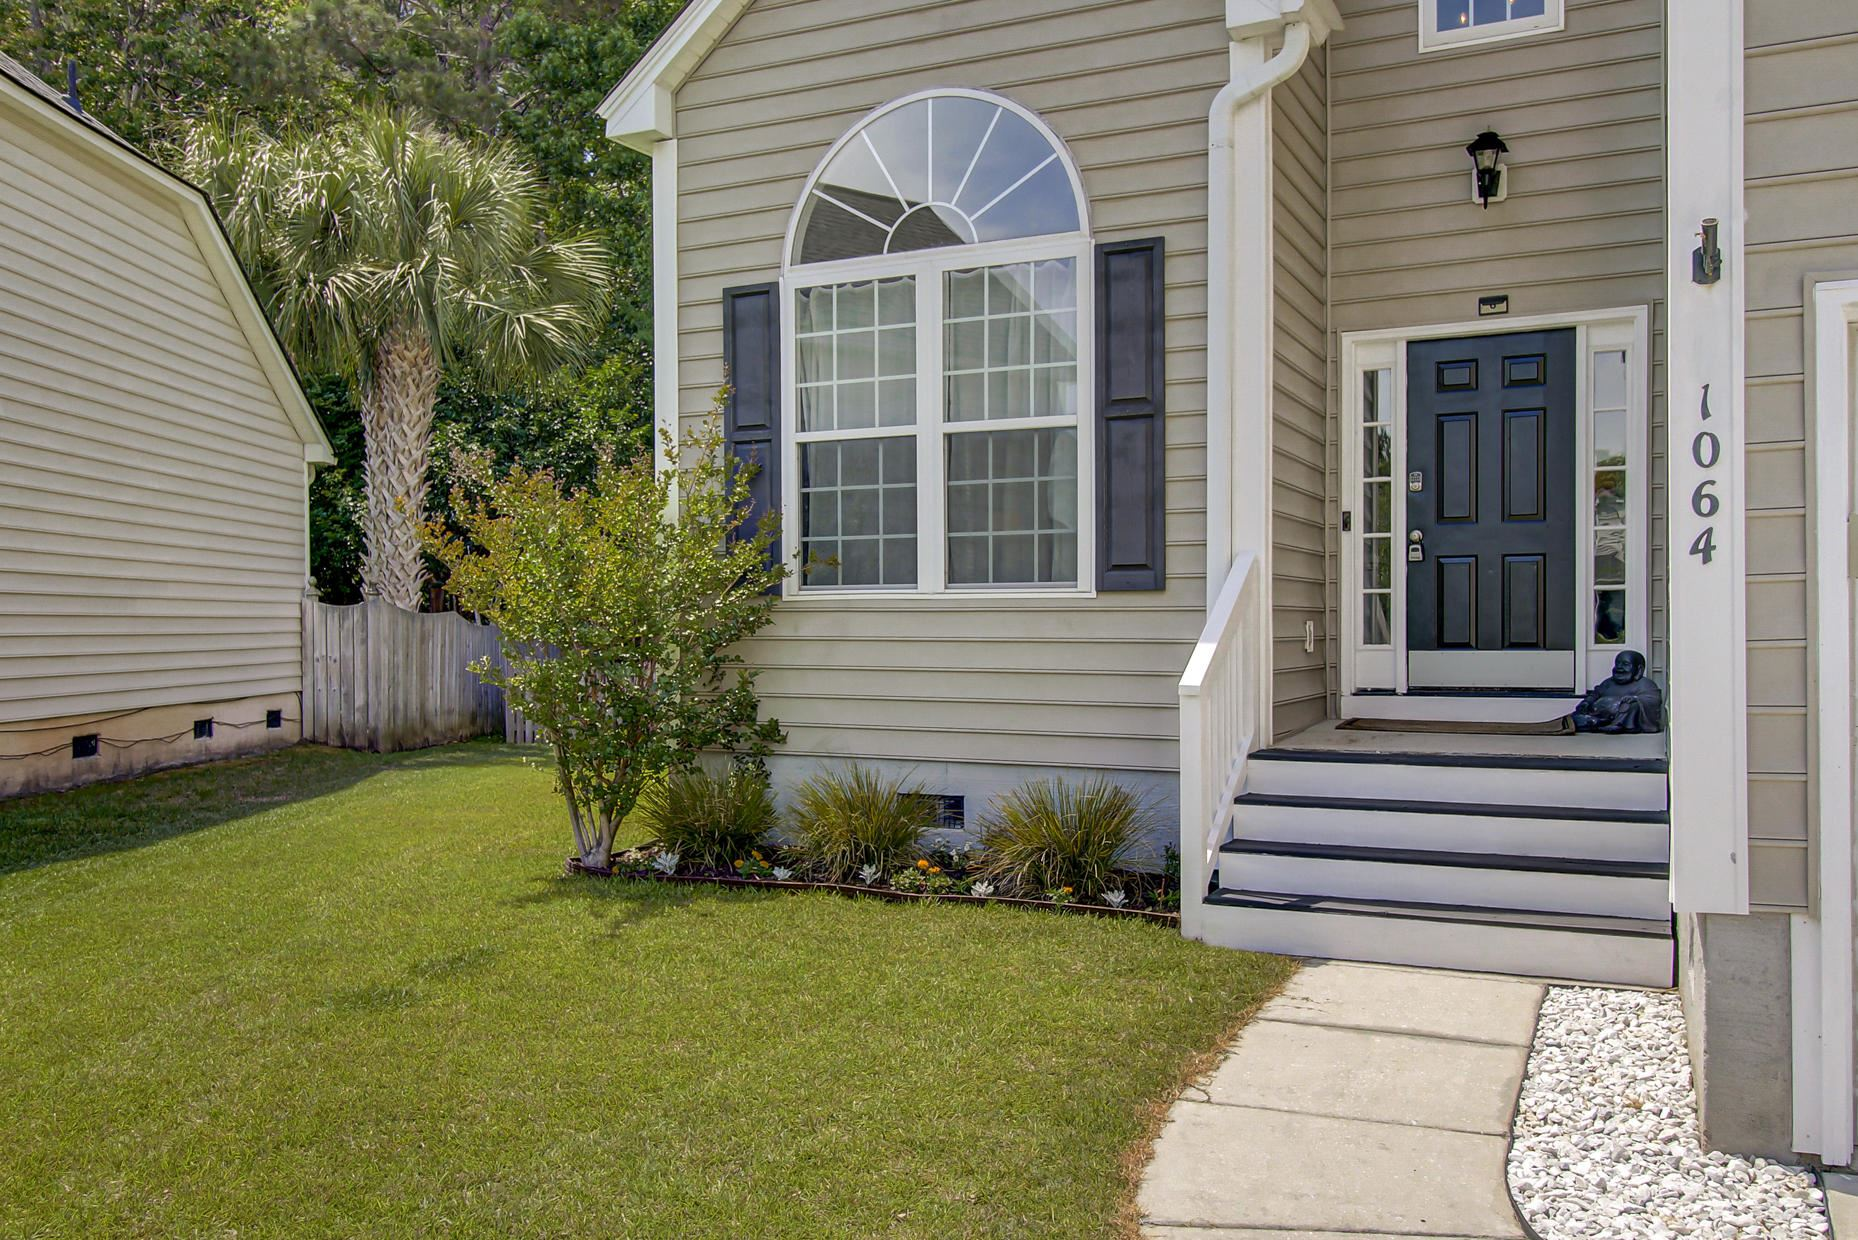 Photo of 1064 Willoughby Lane, Mount Pleasant, SC 29466 (MLS # 21012315)